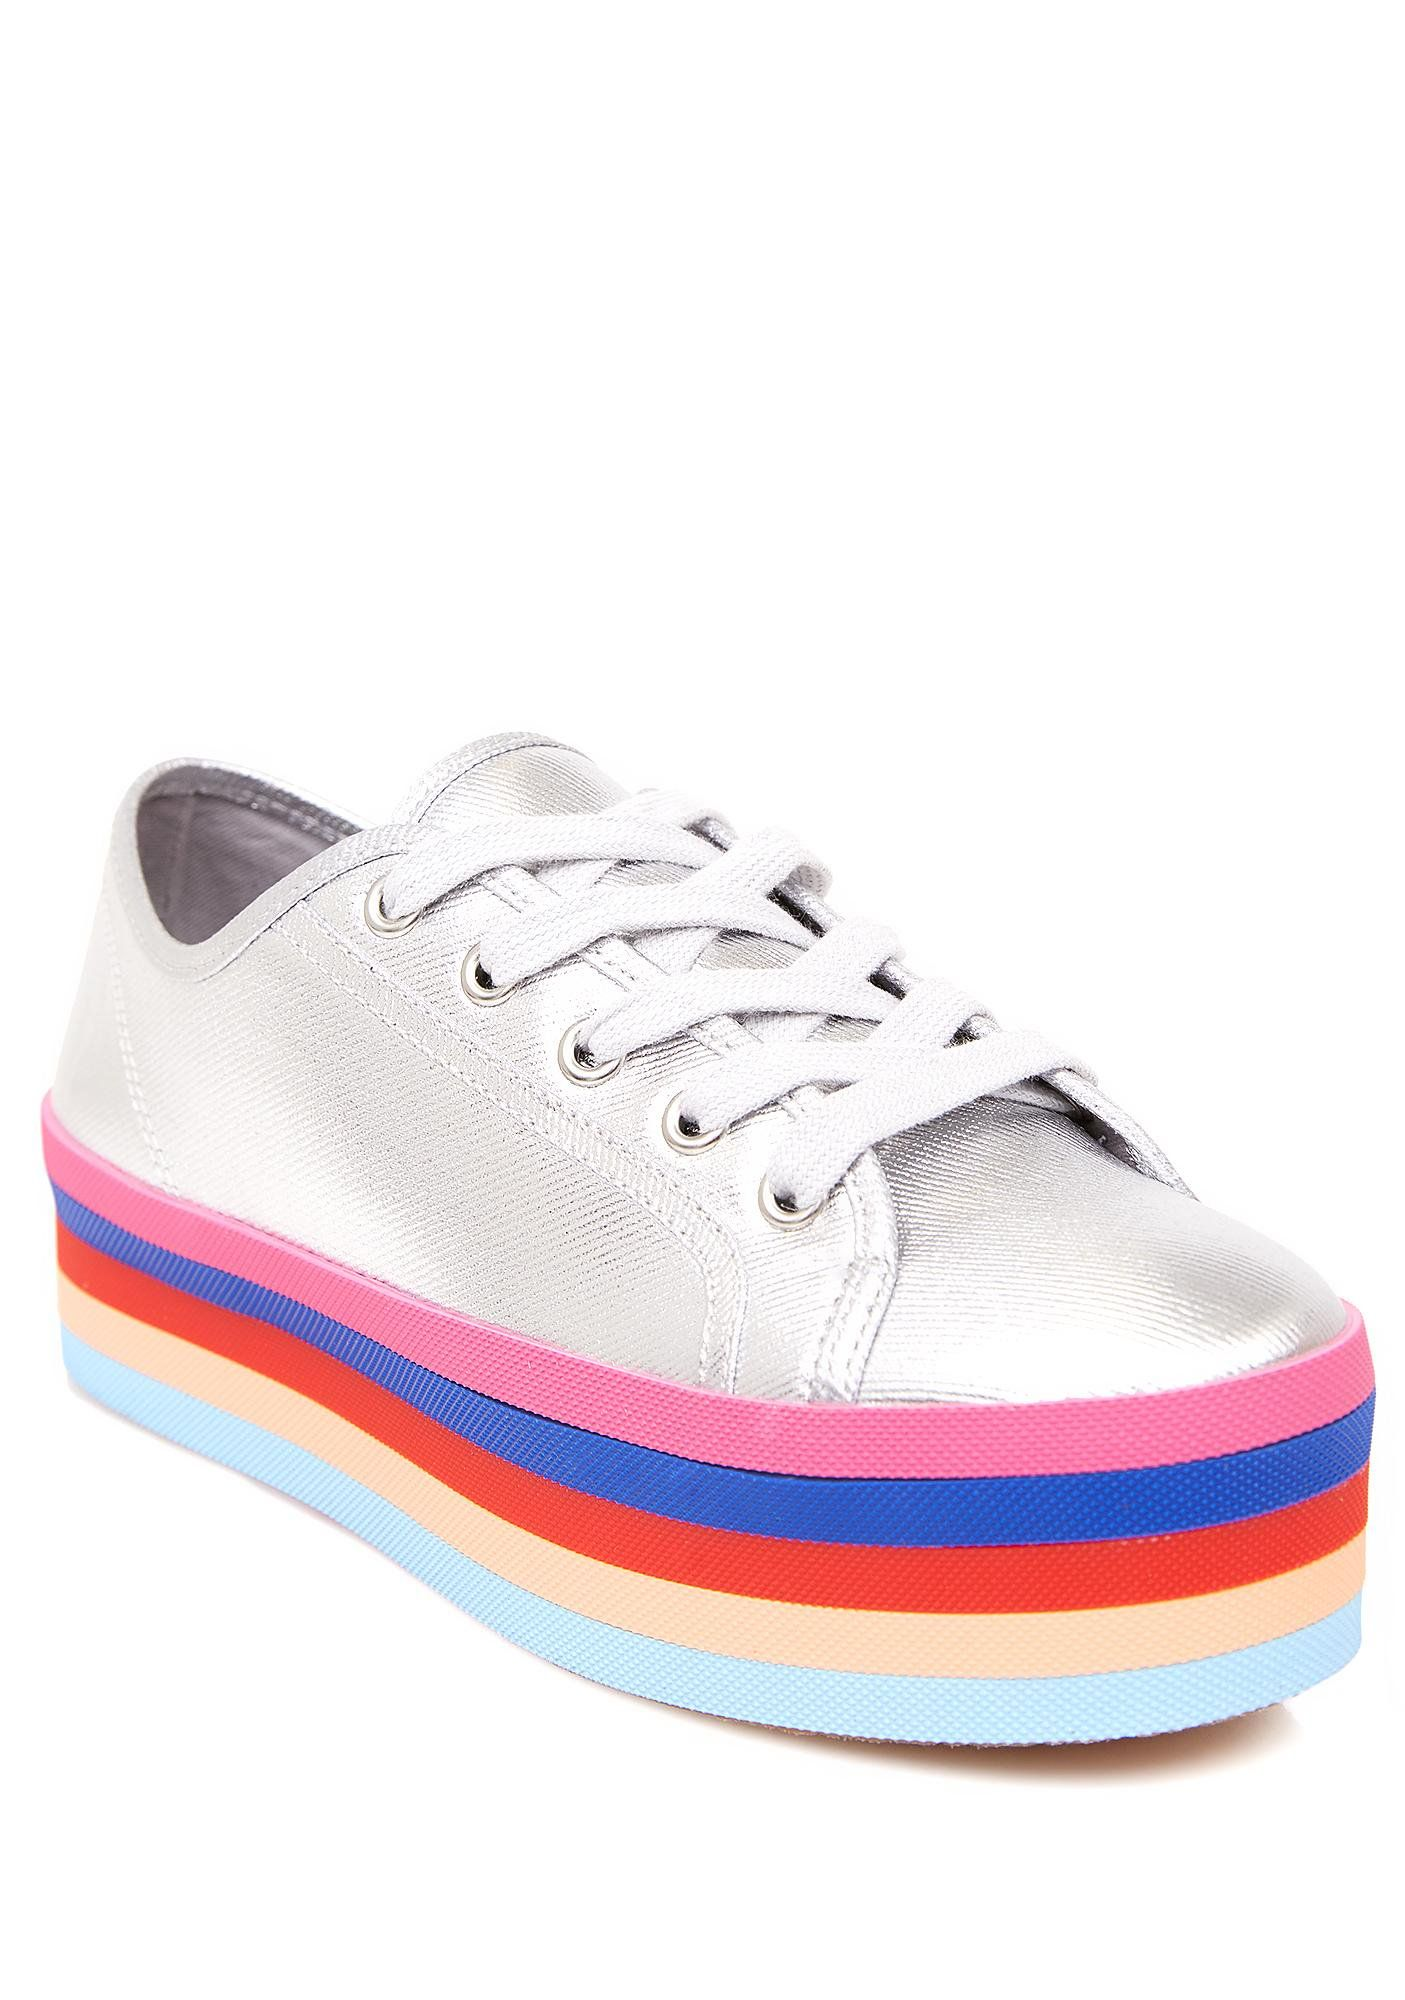 0b1865f0099 Steve Madden Rainbow Sole Lace-Up Shoes